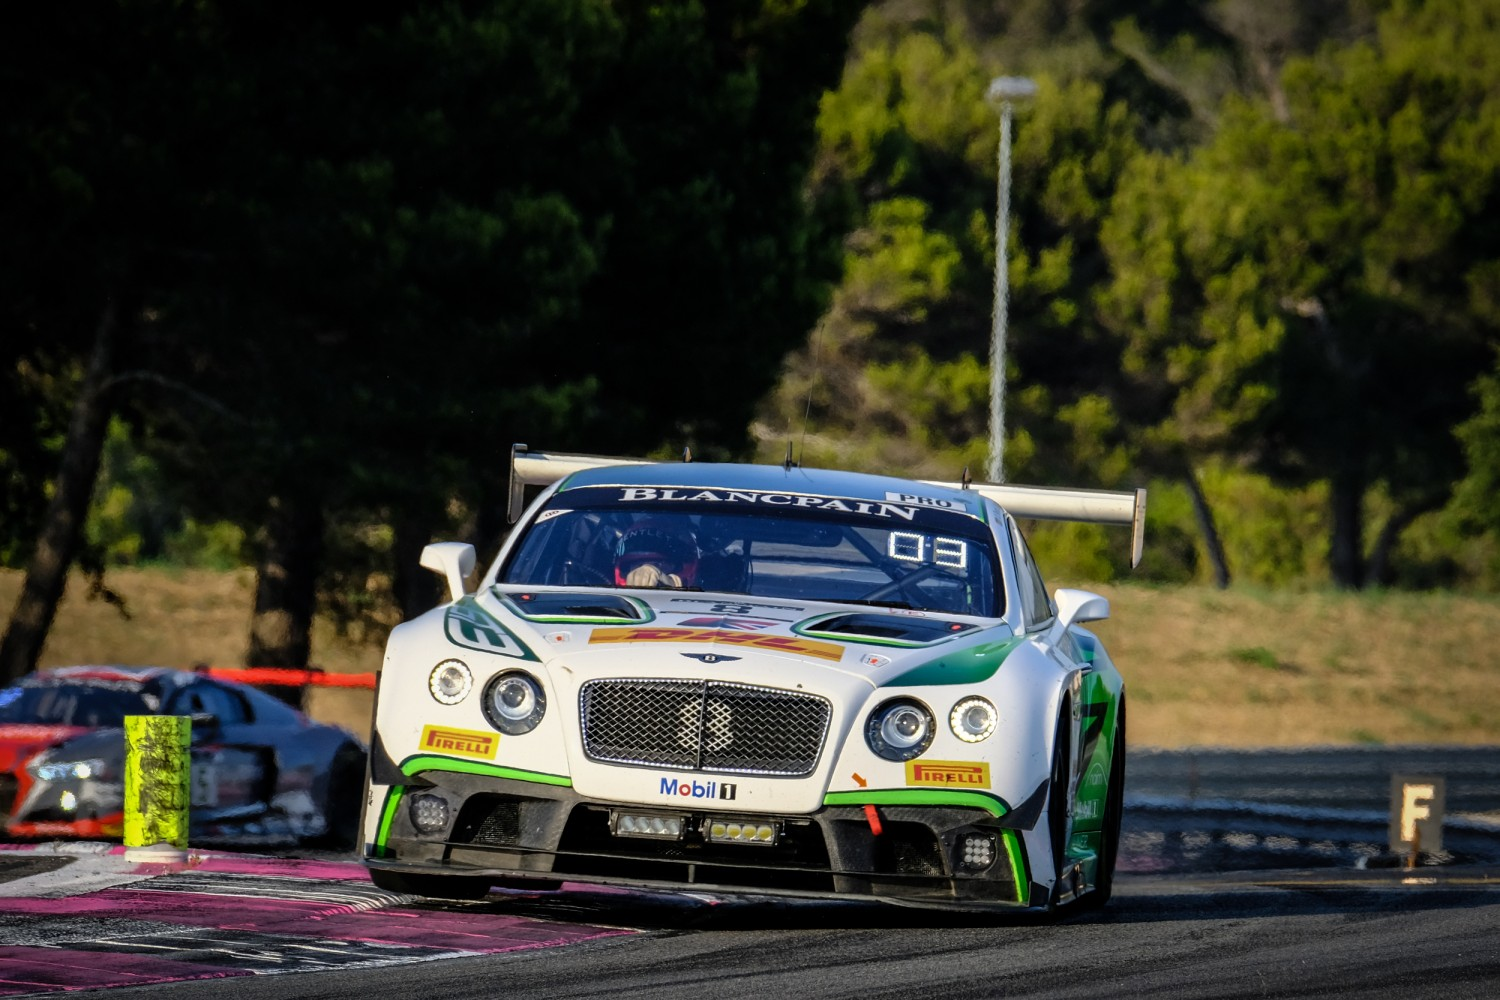 FLASH NEWS: Bentley Team M-Sport takes first endurance win since 2014